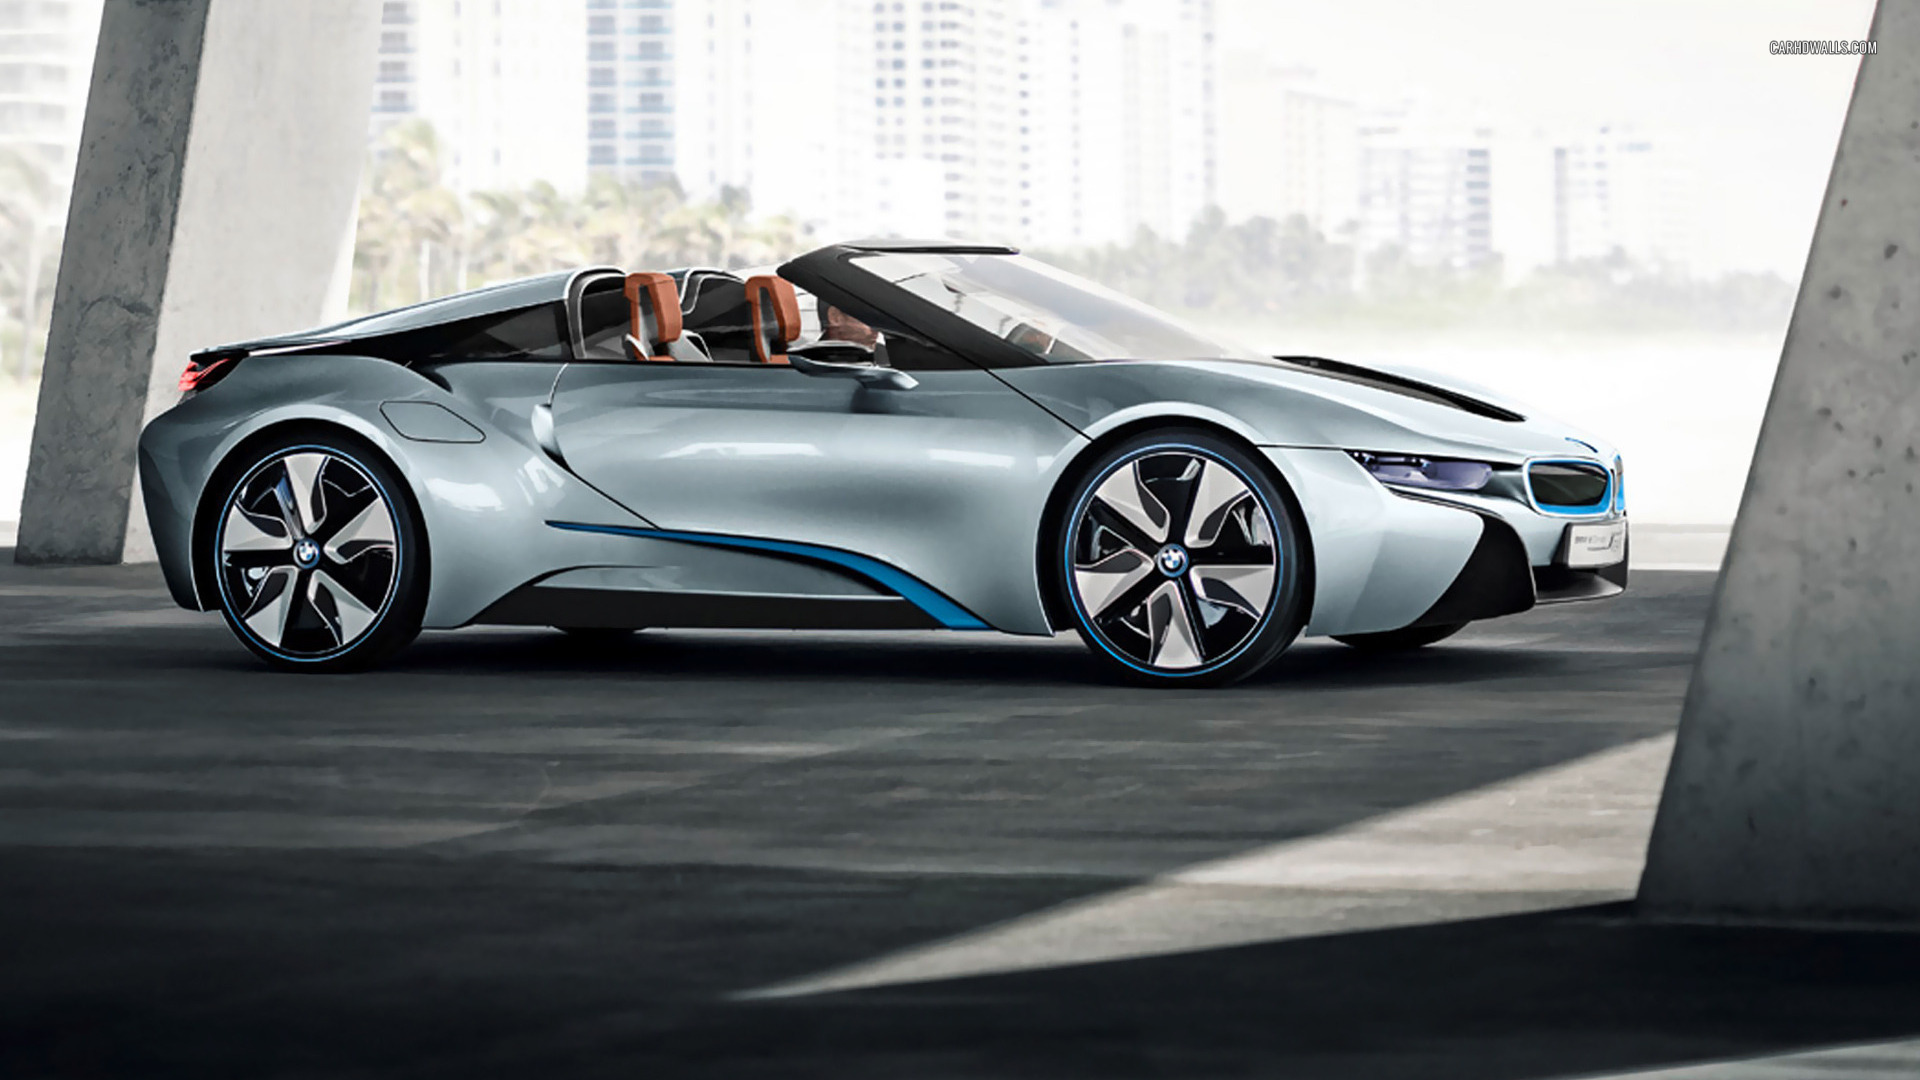 Bmw I8 Spyder Concept To Launch At Ces 2016 Gtspirit